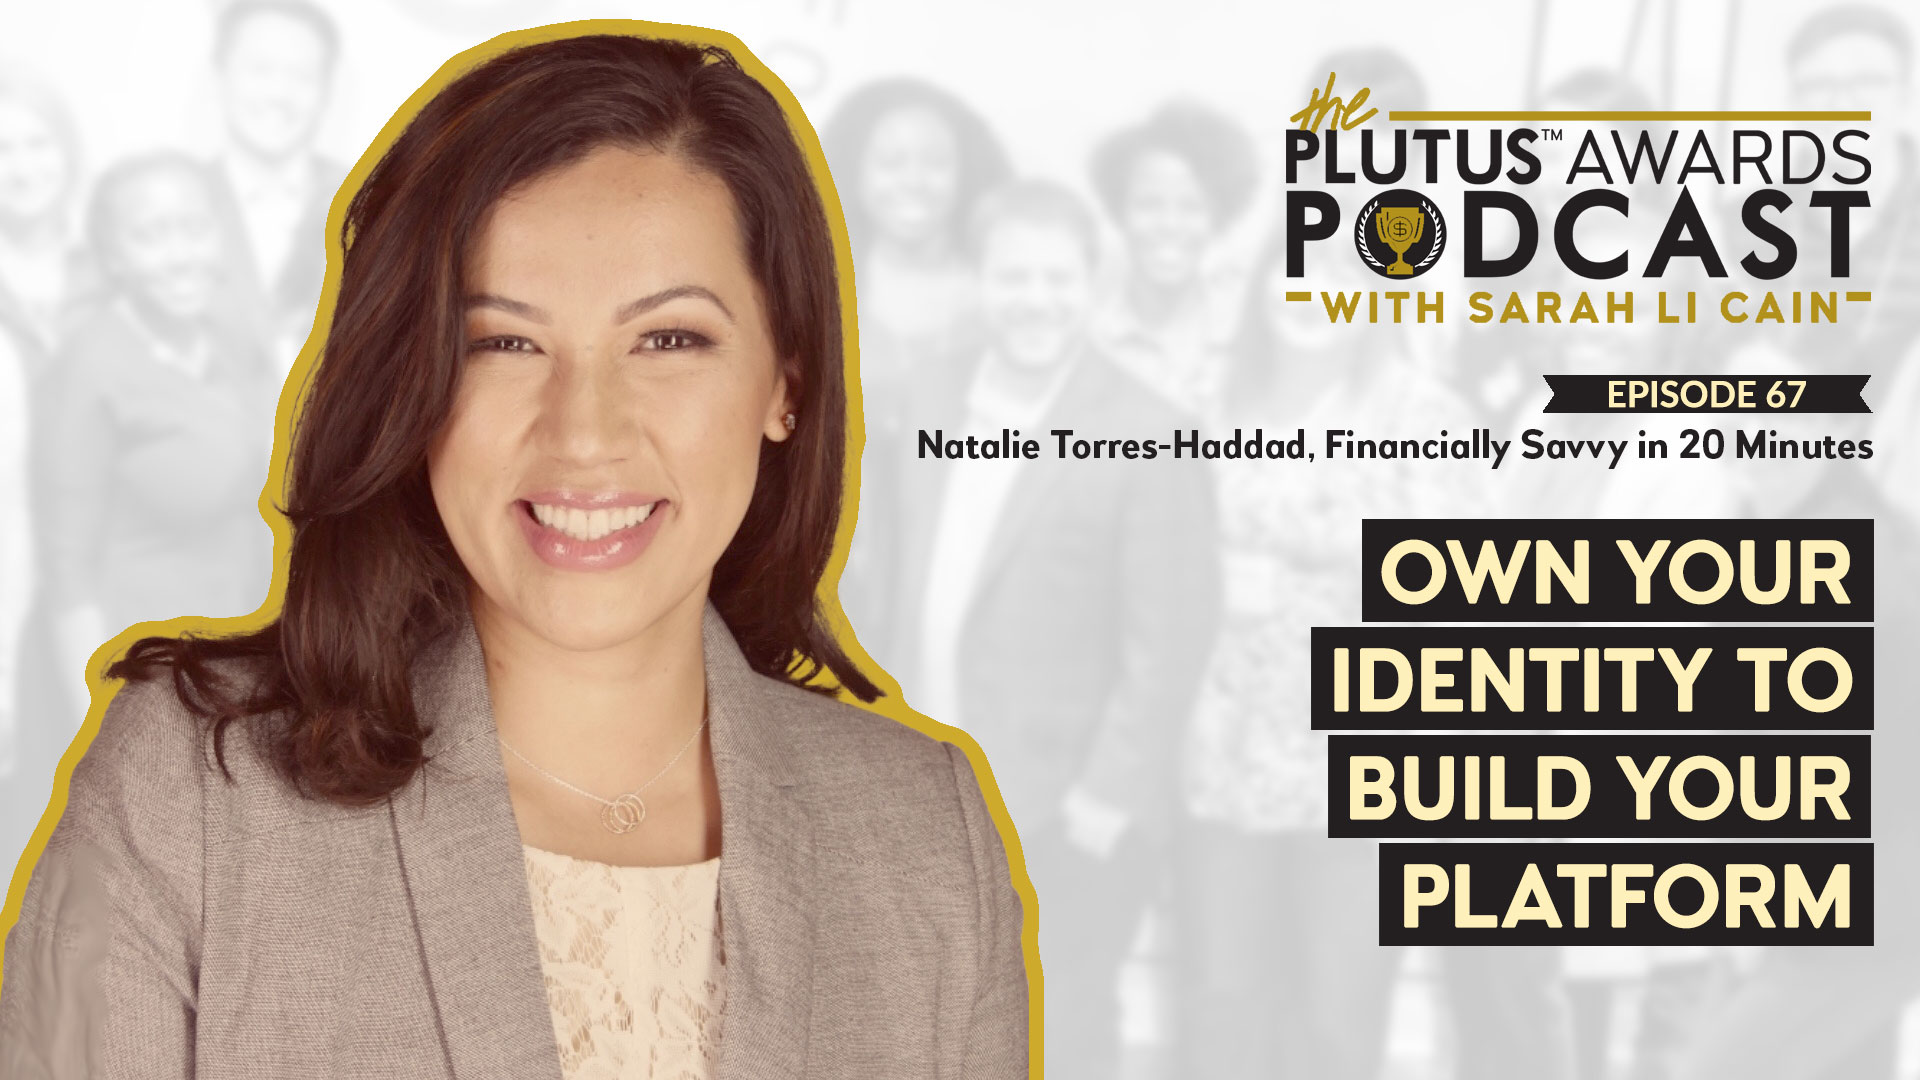 Plutus Awards Podcast - Natalie Torres-Haddad Featured Image